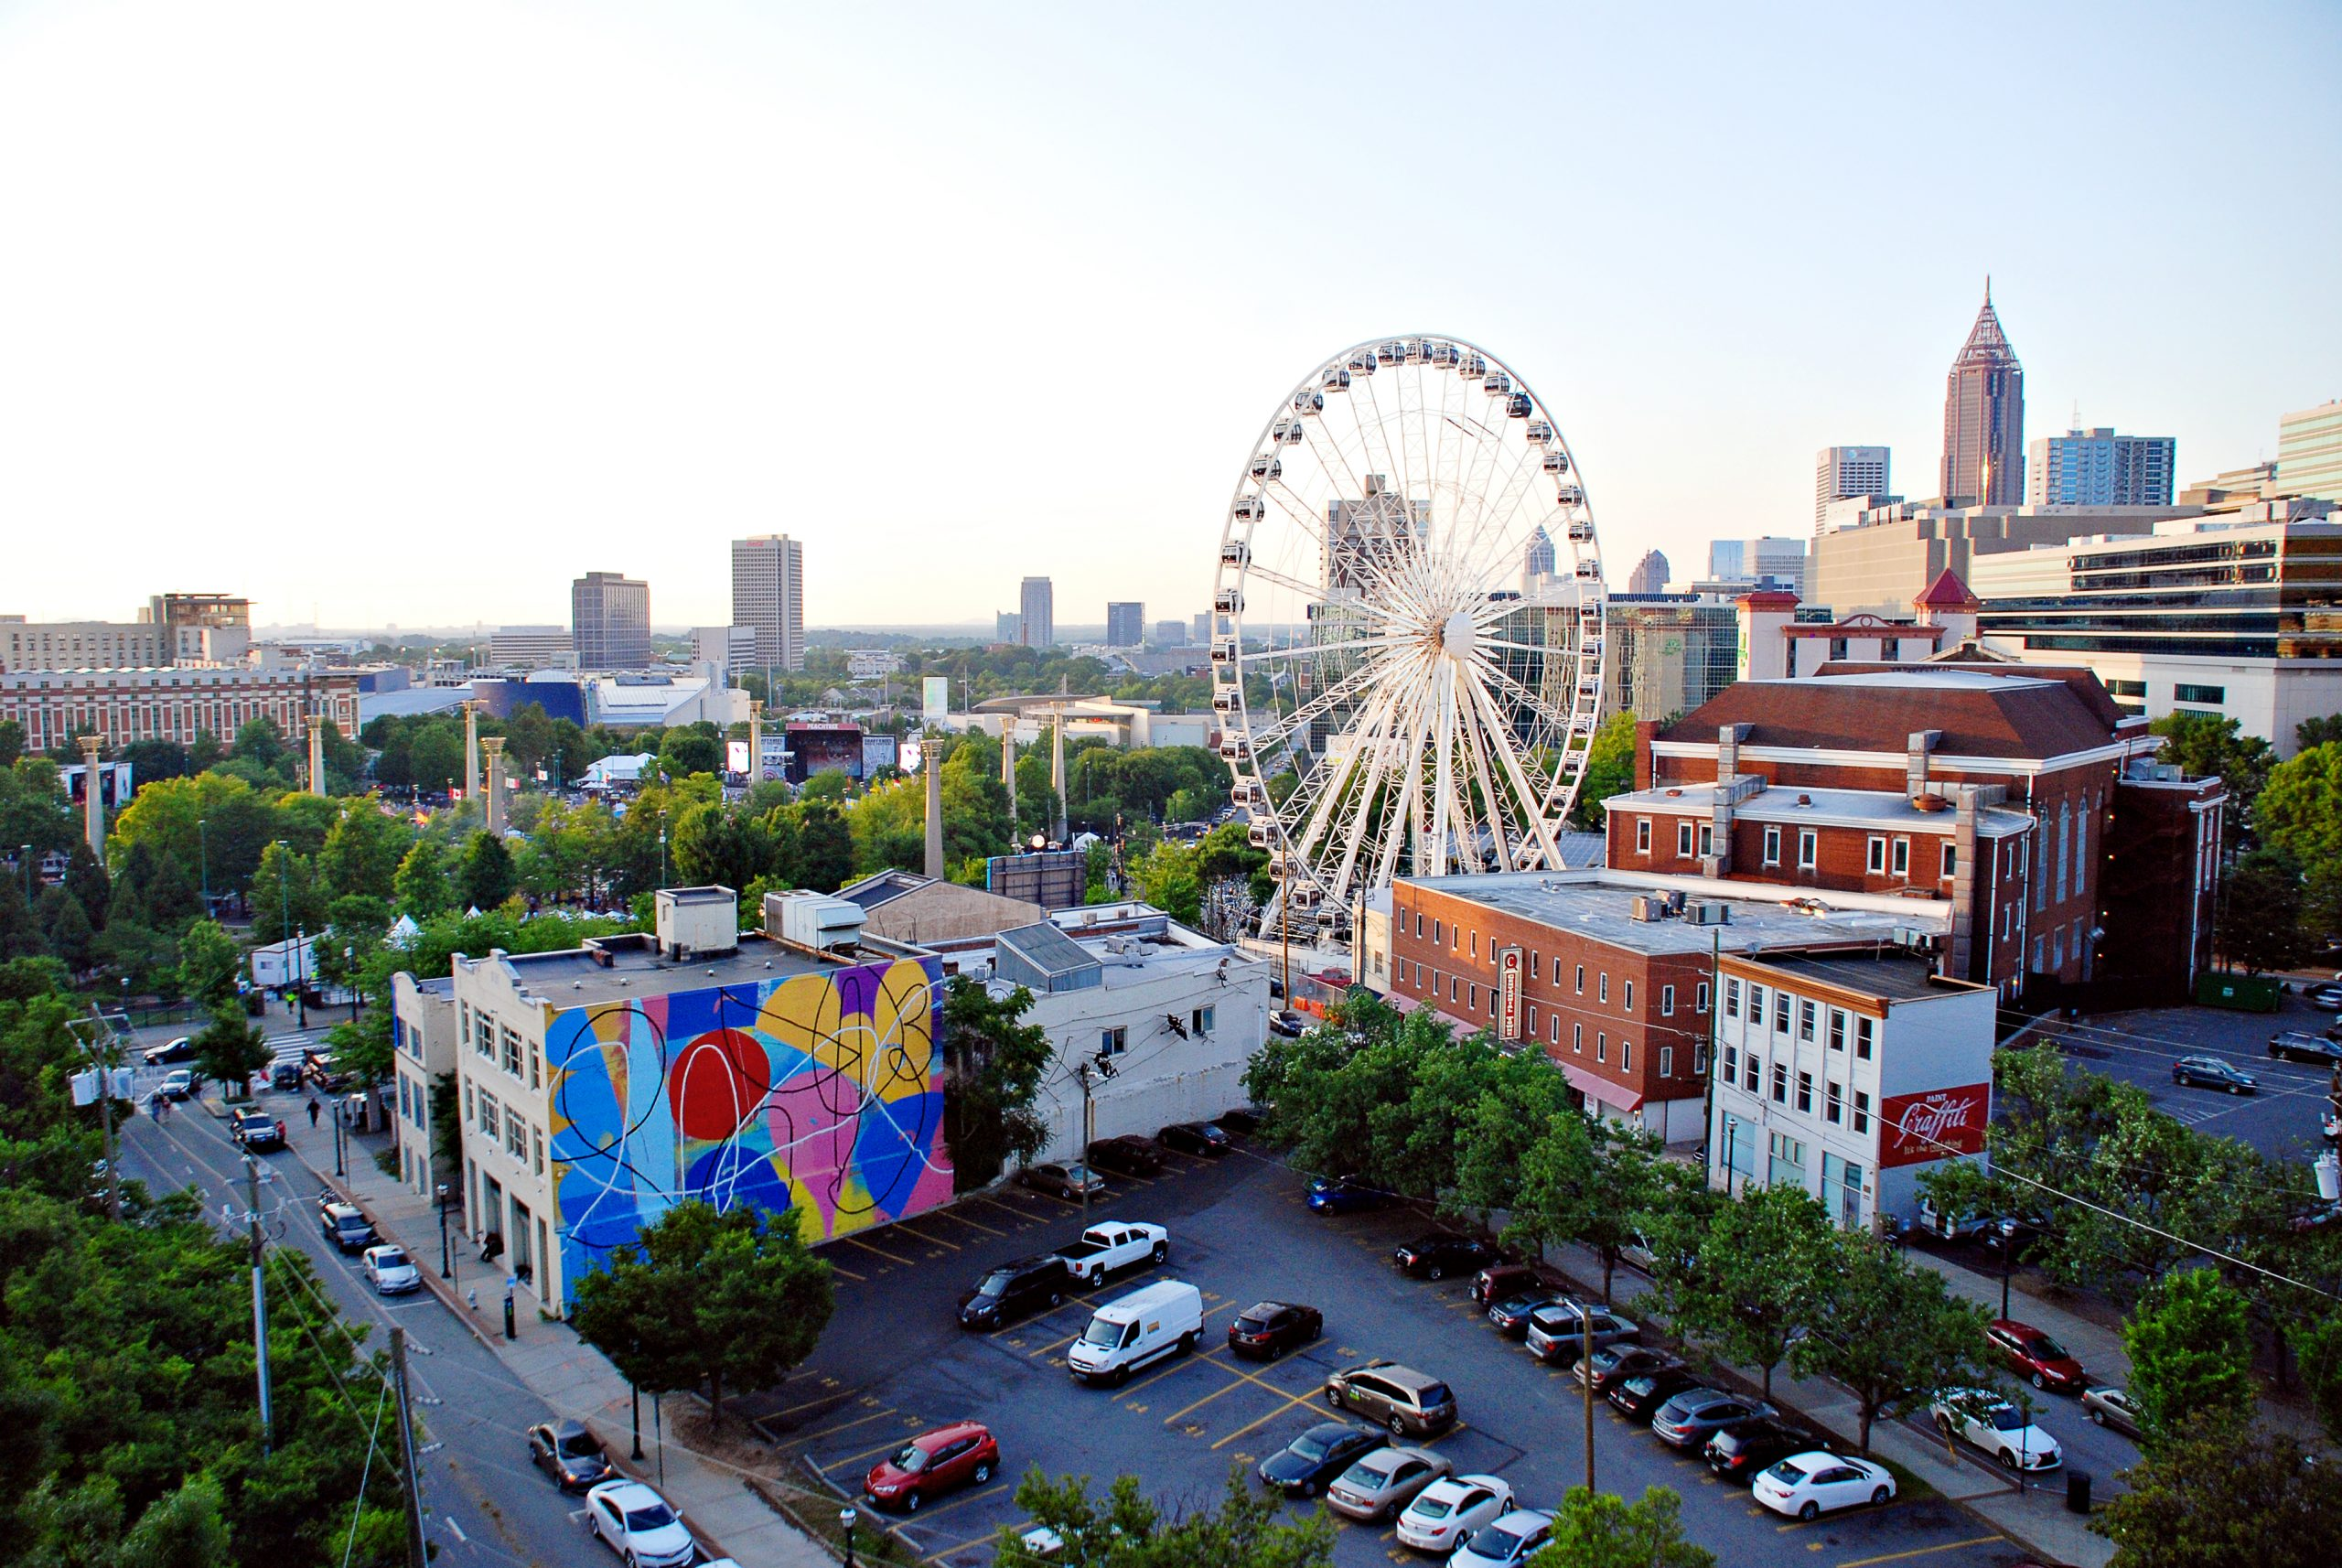 A view of Downtown Atlanta, that includes Centennial Olympic Park, SkyView Atlanta Ferris wheel, and Atlanta street art.